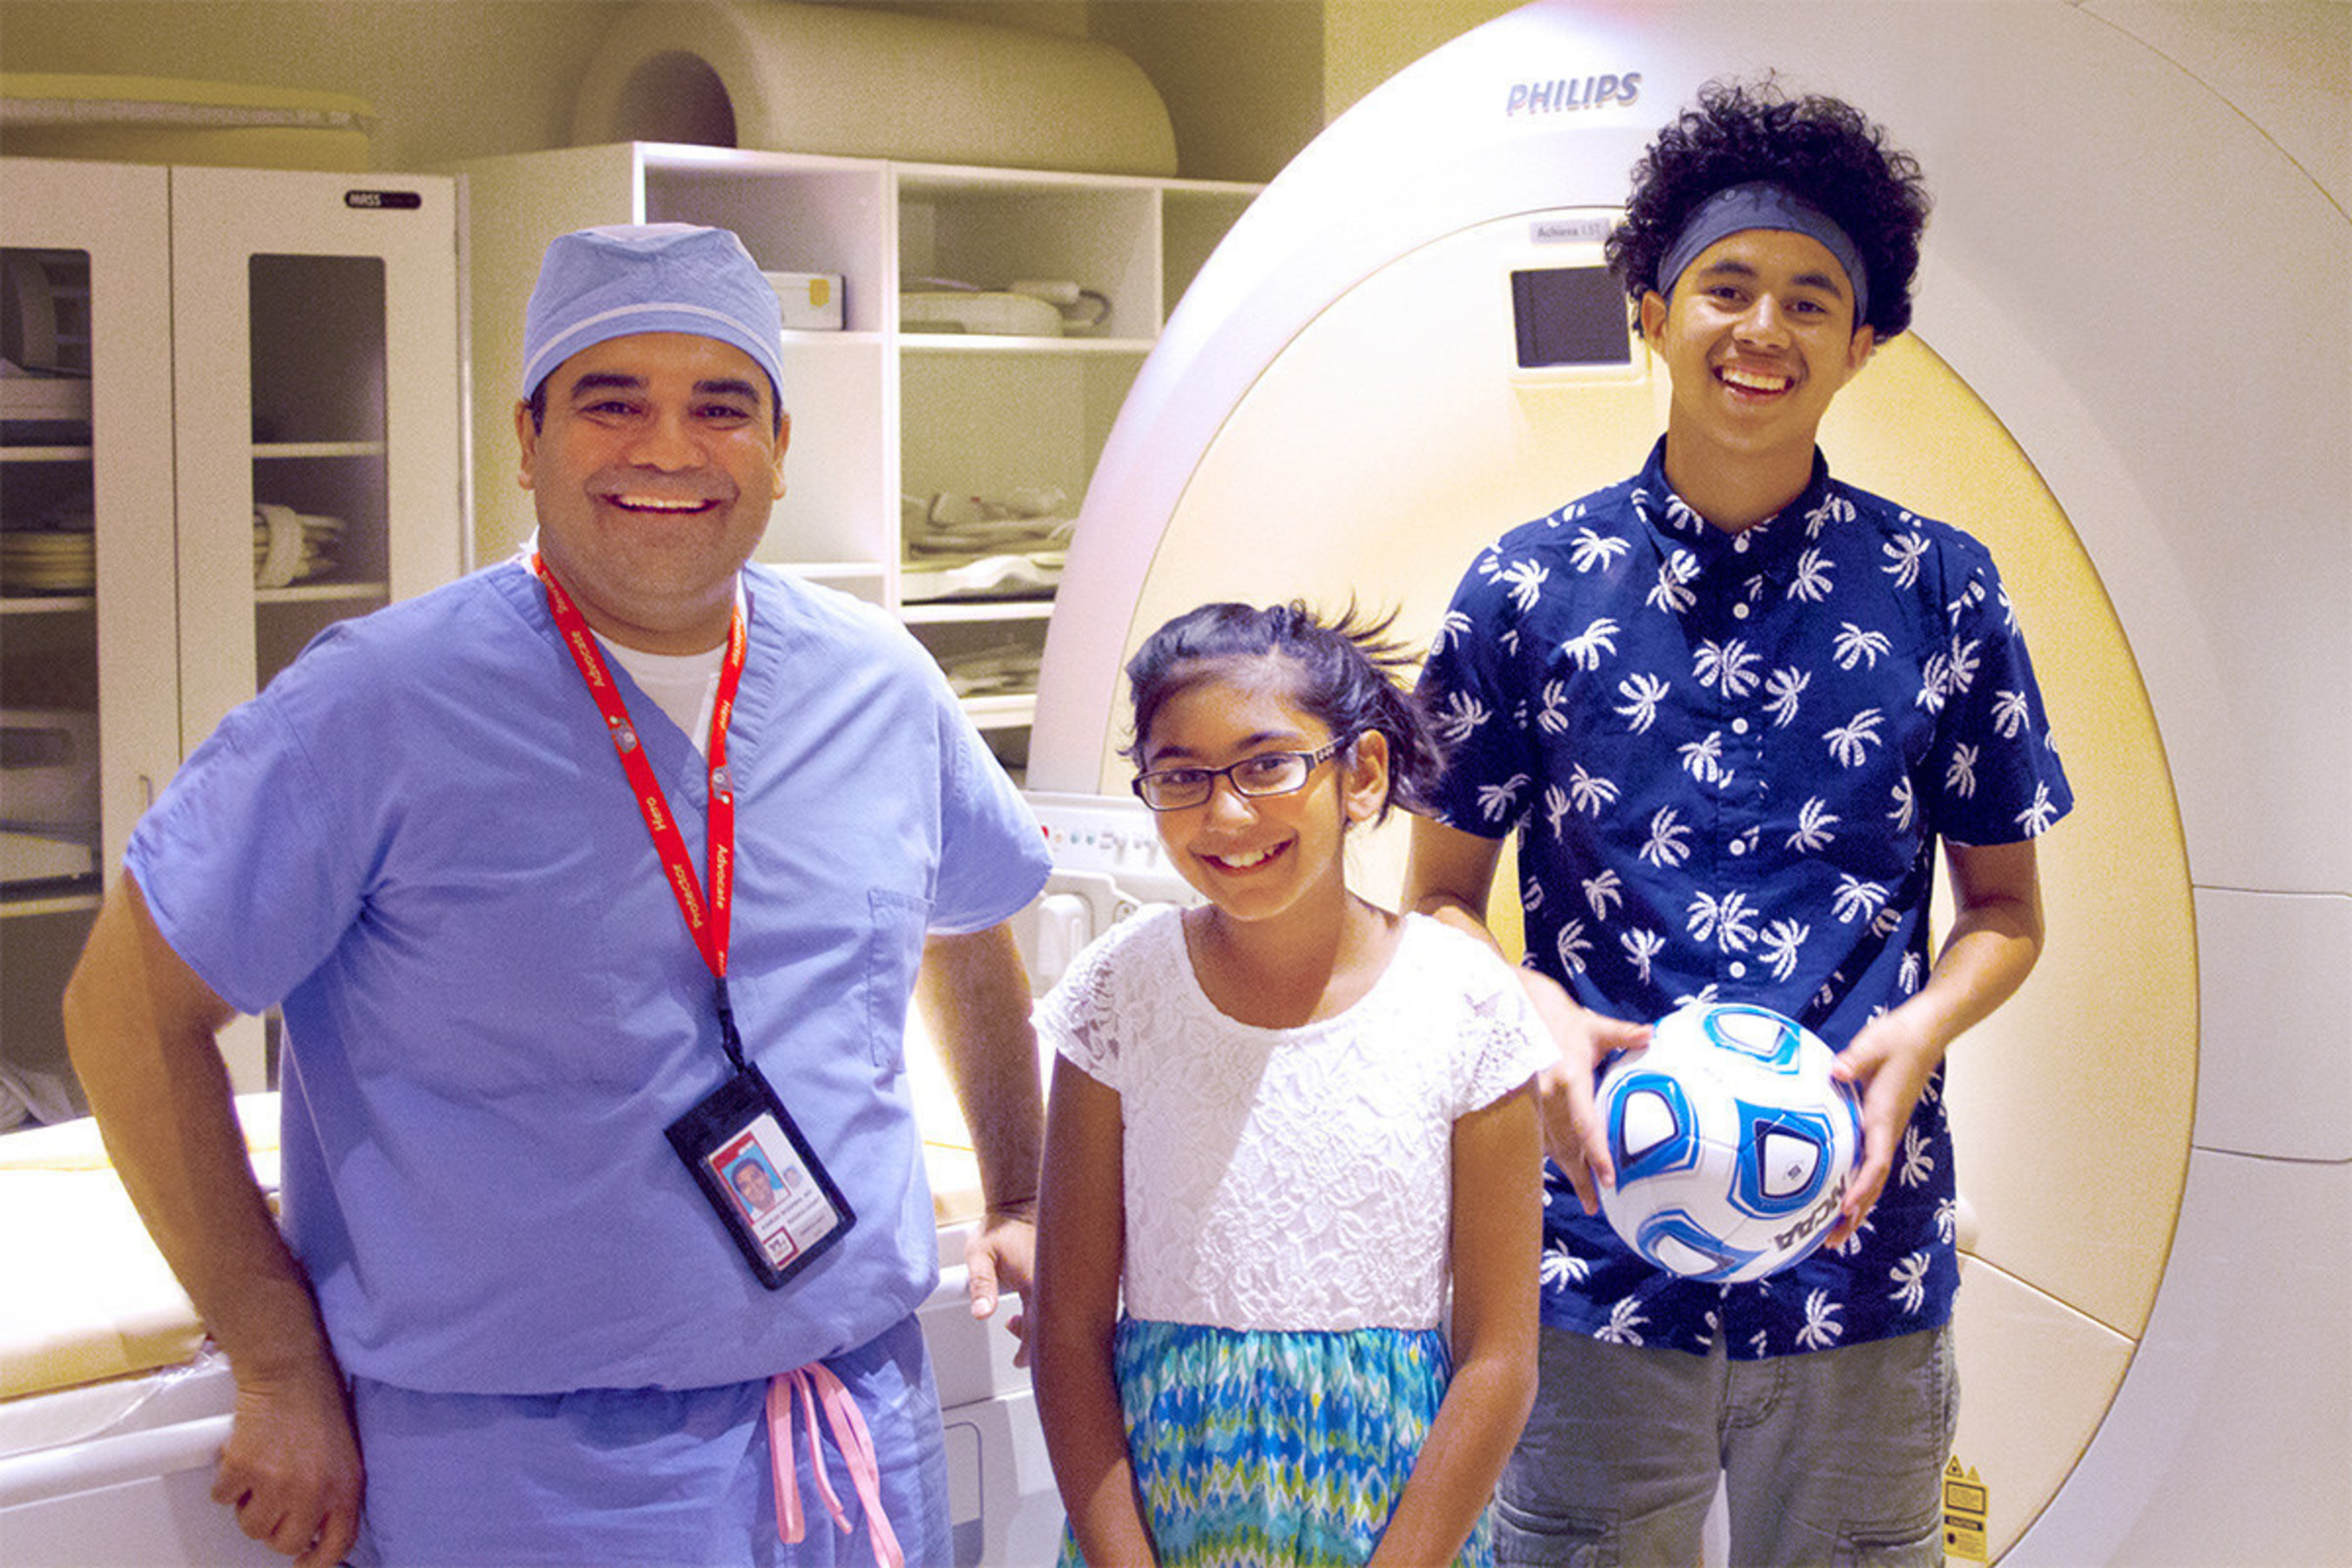 Karun Sharma, MD, PhD, interventional radiologist at Children's National Health System, poses with 10-year-old Niyati Shah and 16-year-old Alfredo Coreas, the first two children with osteoid osteoma successfully treated in the U.S. as part of an innovative research study using noninvasive MR-HIFU.